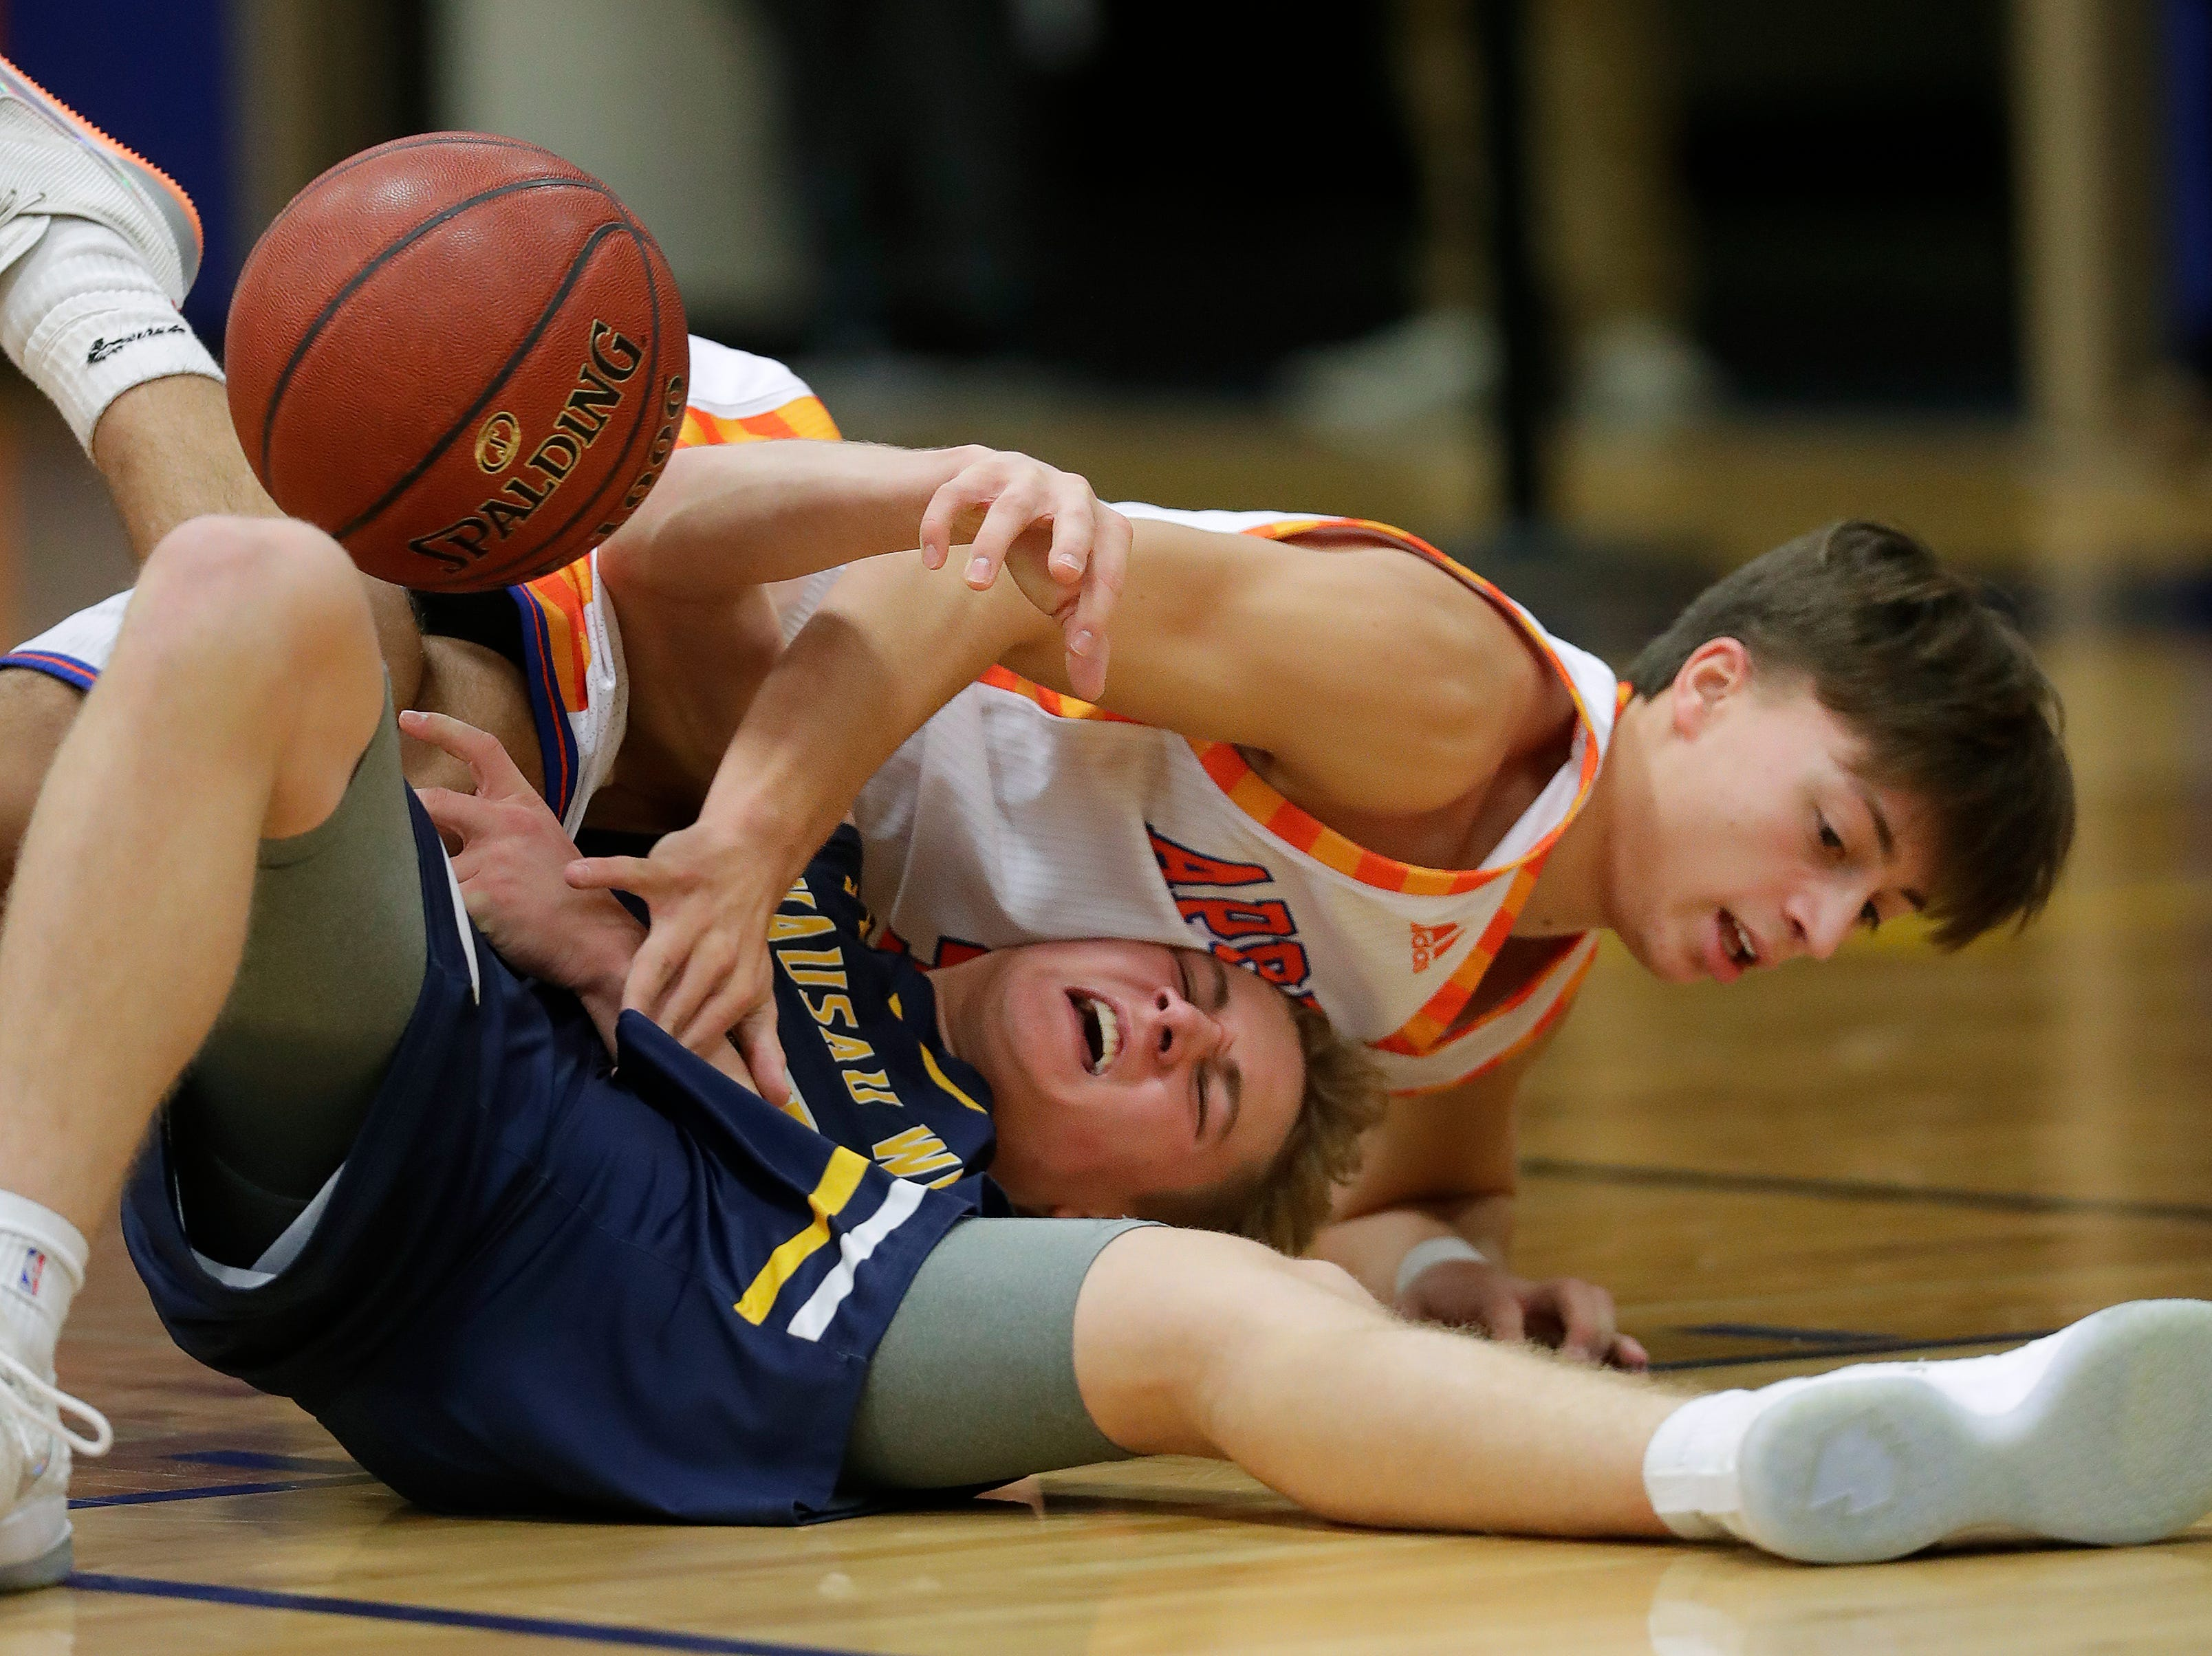 Appleton West  High School's Eli Vogel, top, battles for a loose ball against Wausau West High School's Mitchell Zahurones during their boys basketball game Friday, December 28, 2018, in Appleton, Wis. Dan Powers/USA TODAY NETWORK-Wisconsin